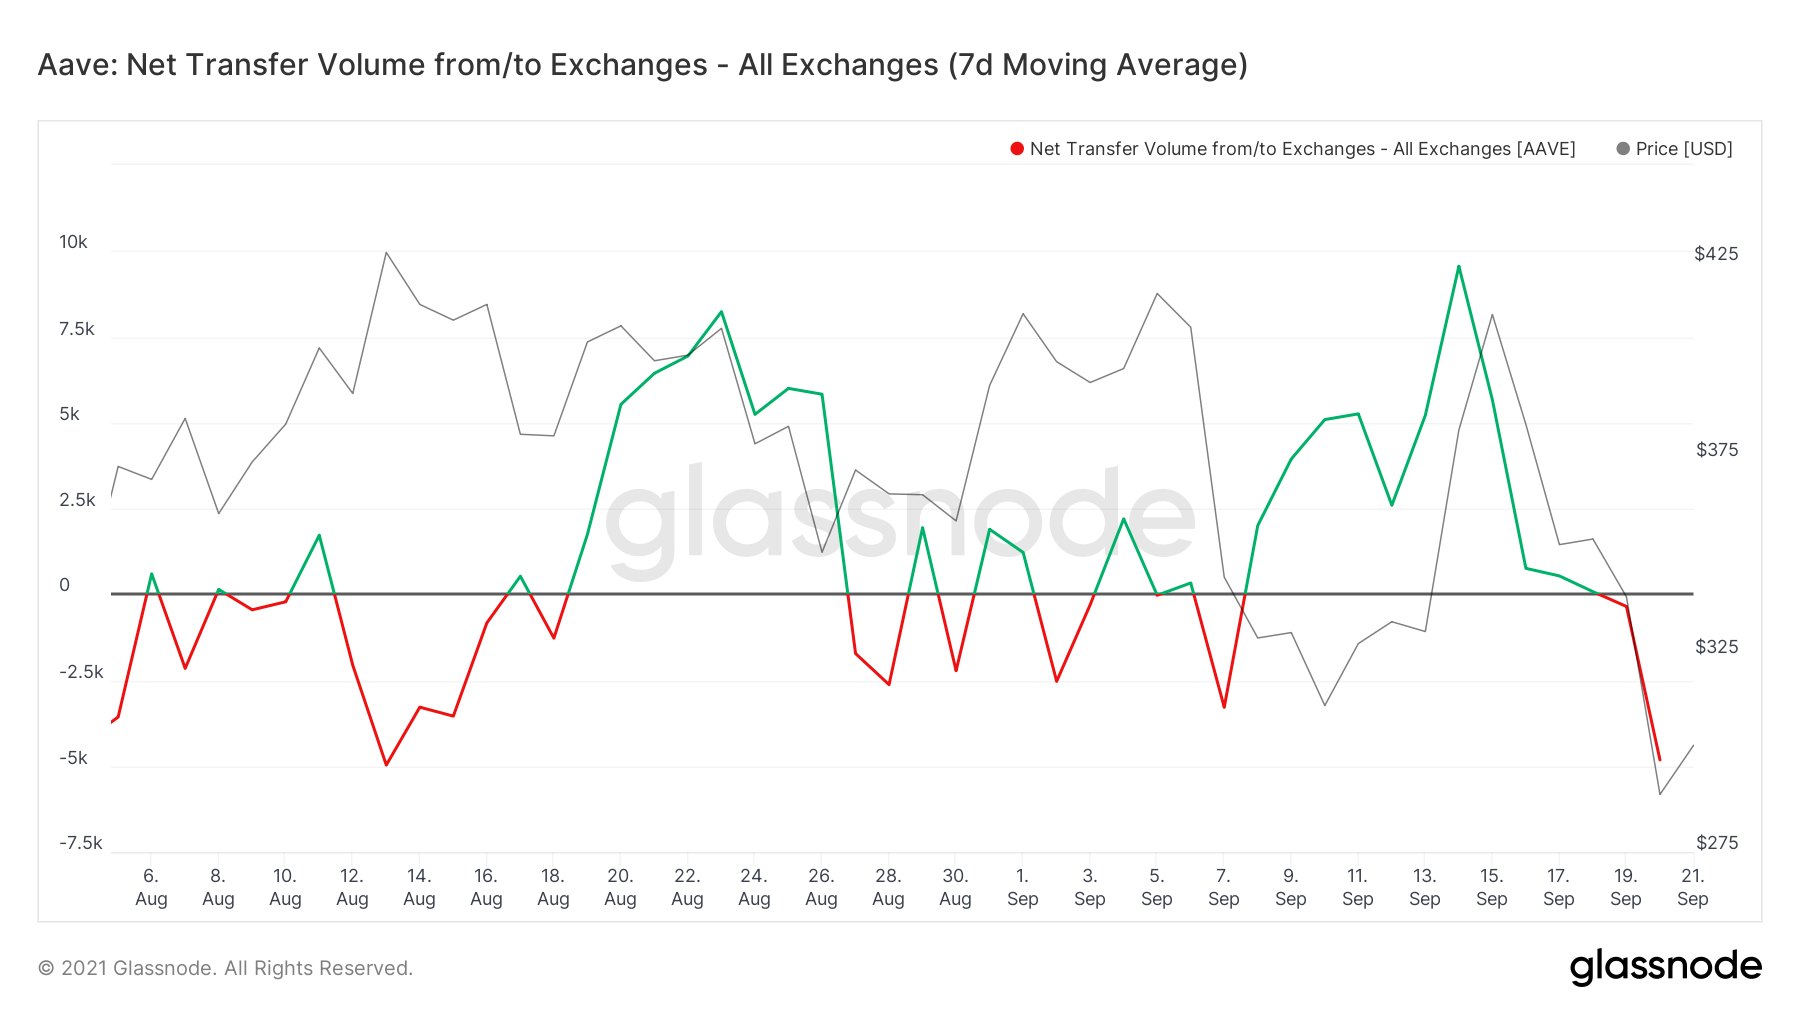 glassnode studio aave net transfer volume from to exchanges all exchanges 7 d moving average